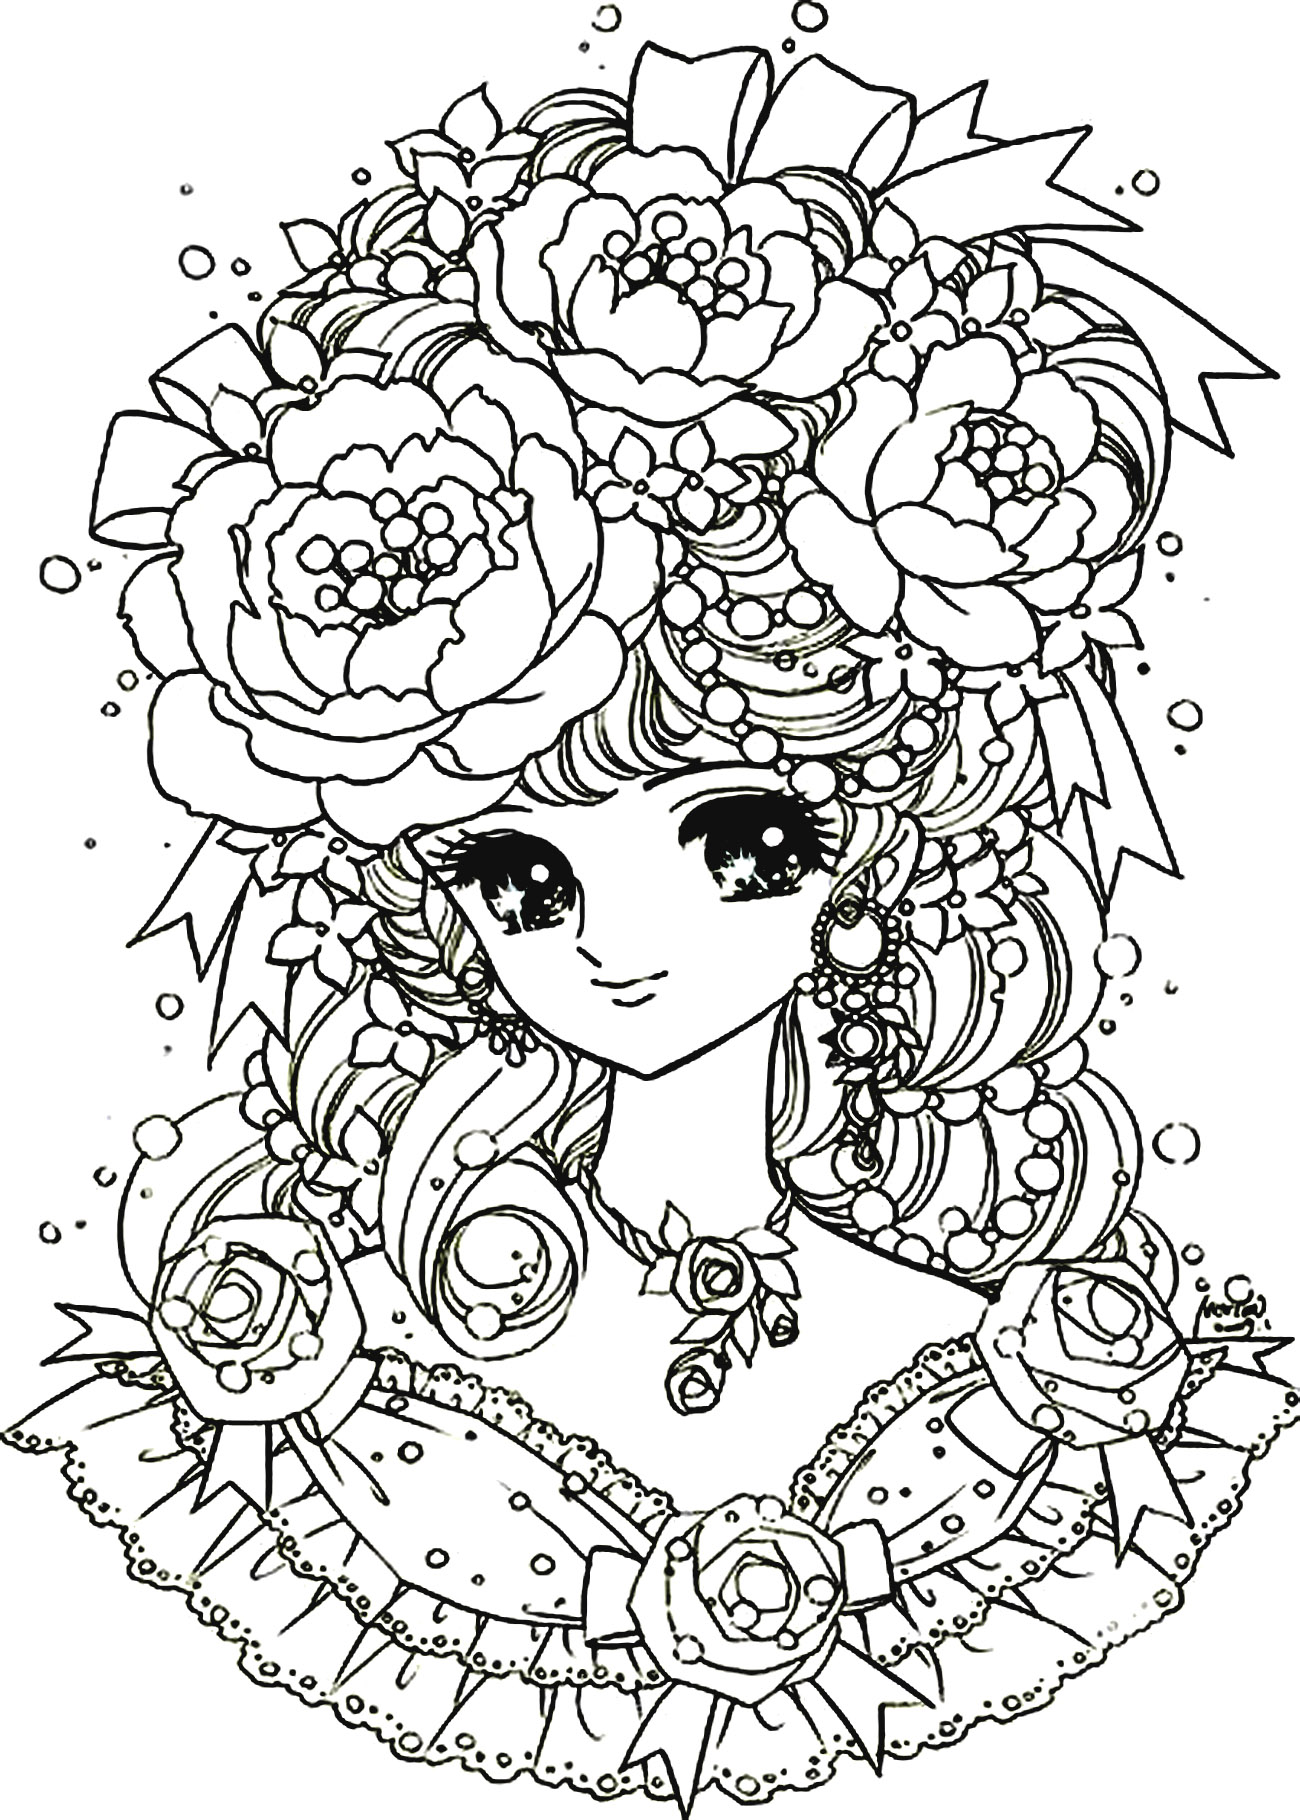 Manga Flowers Girl Manga Anime Coloring Pages For Adults